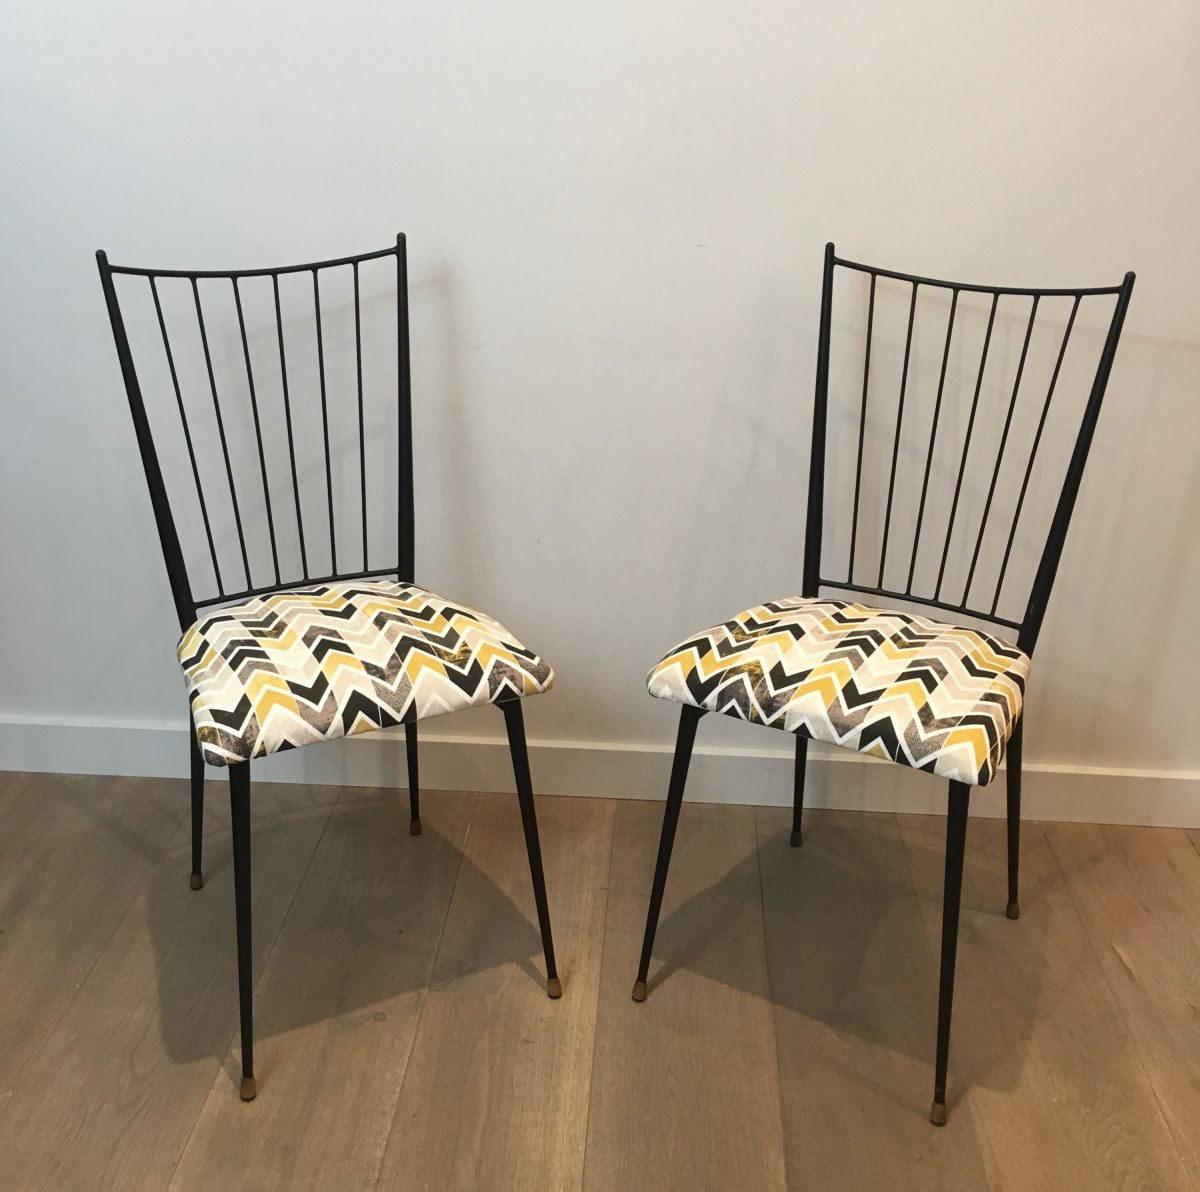 Colette Gueden. Pair Of Black Lacquered Chairs. French. Circa 1950